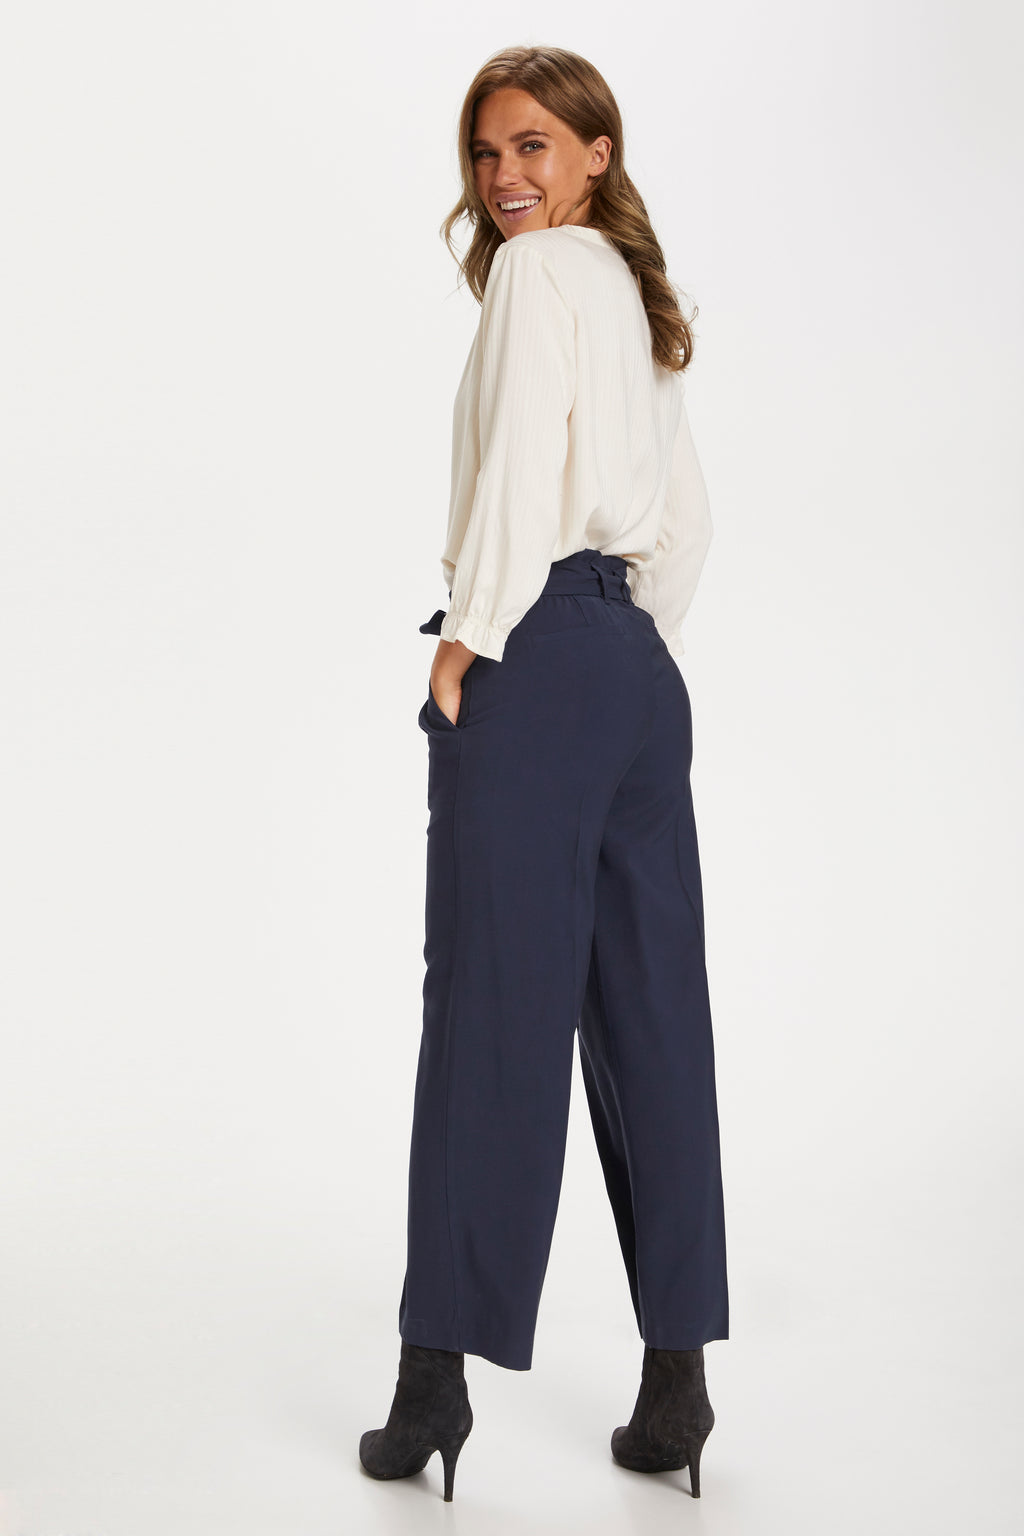 Saint Tropez Edora Trousers - Navy